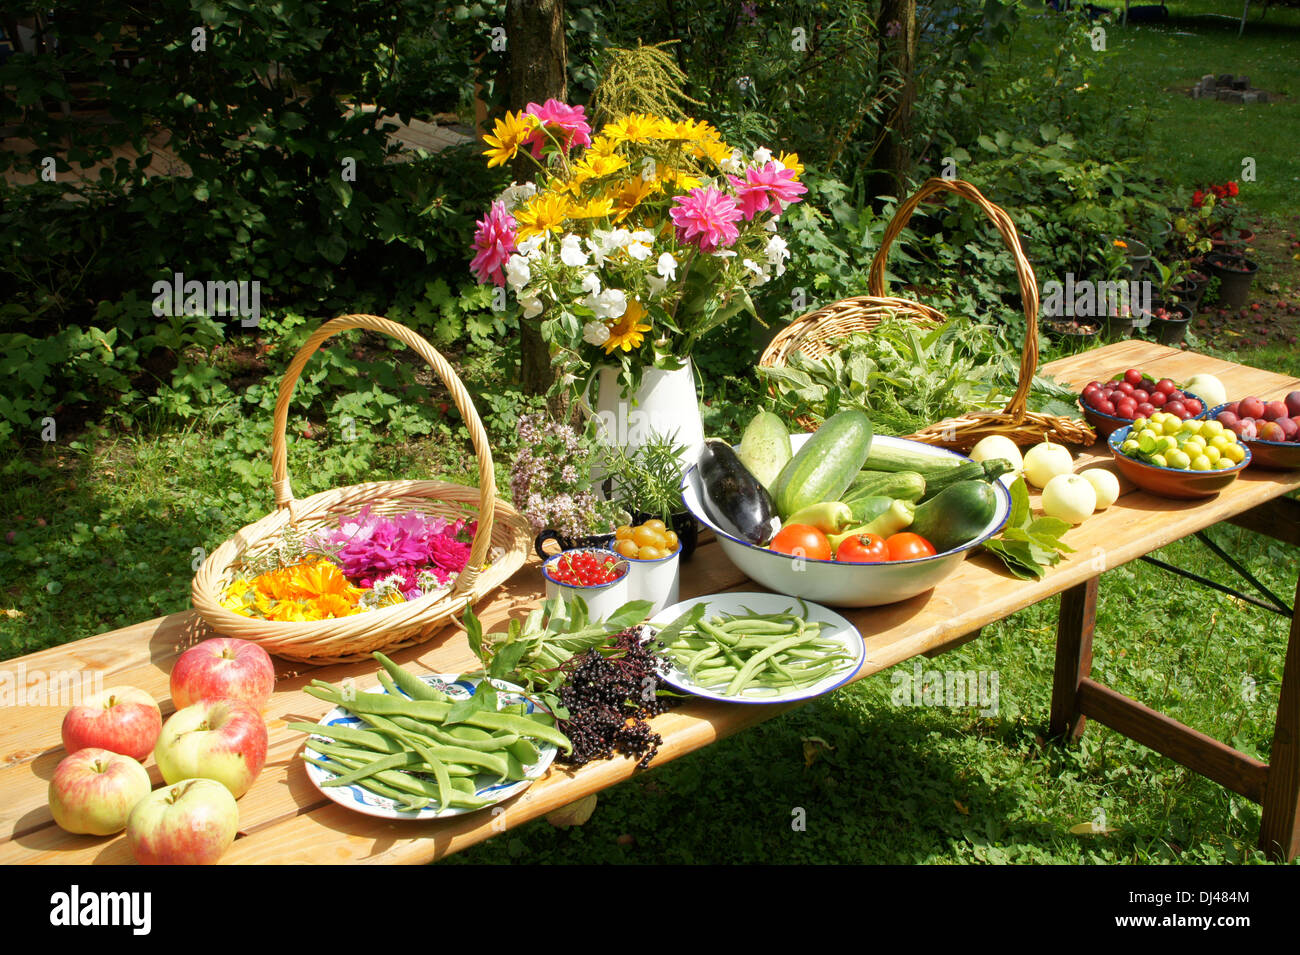 Vegetables, Fruits, Flowers, Herbs Stock Photo